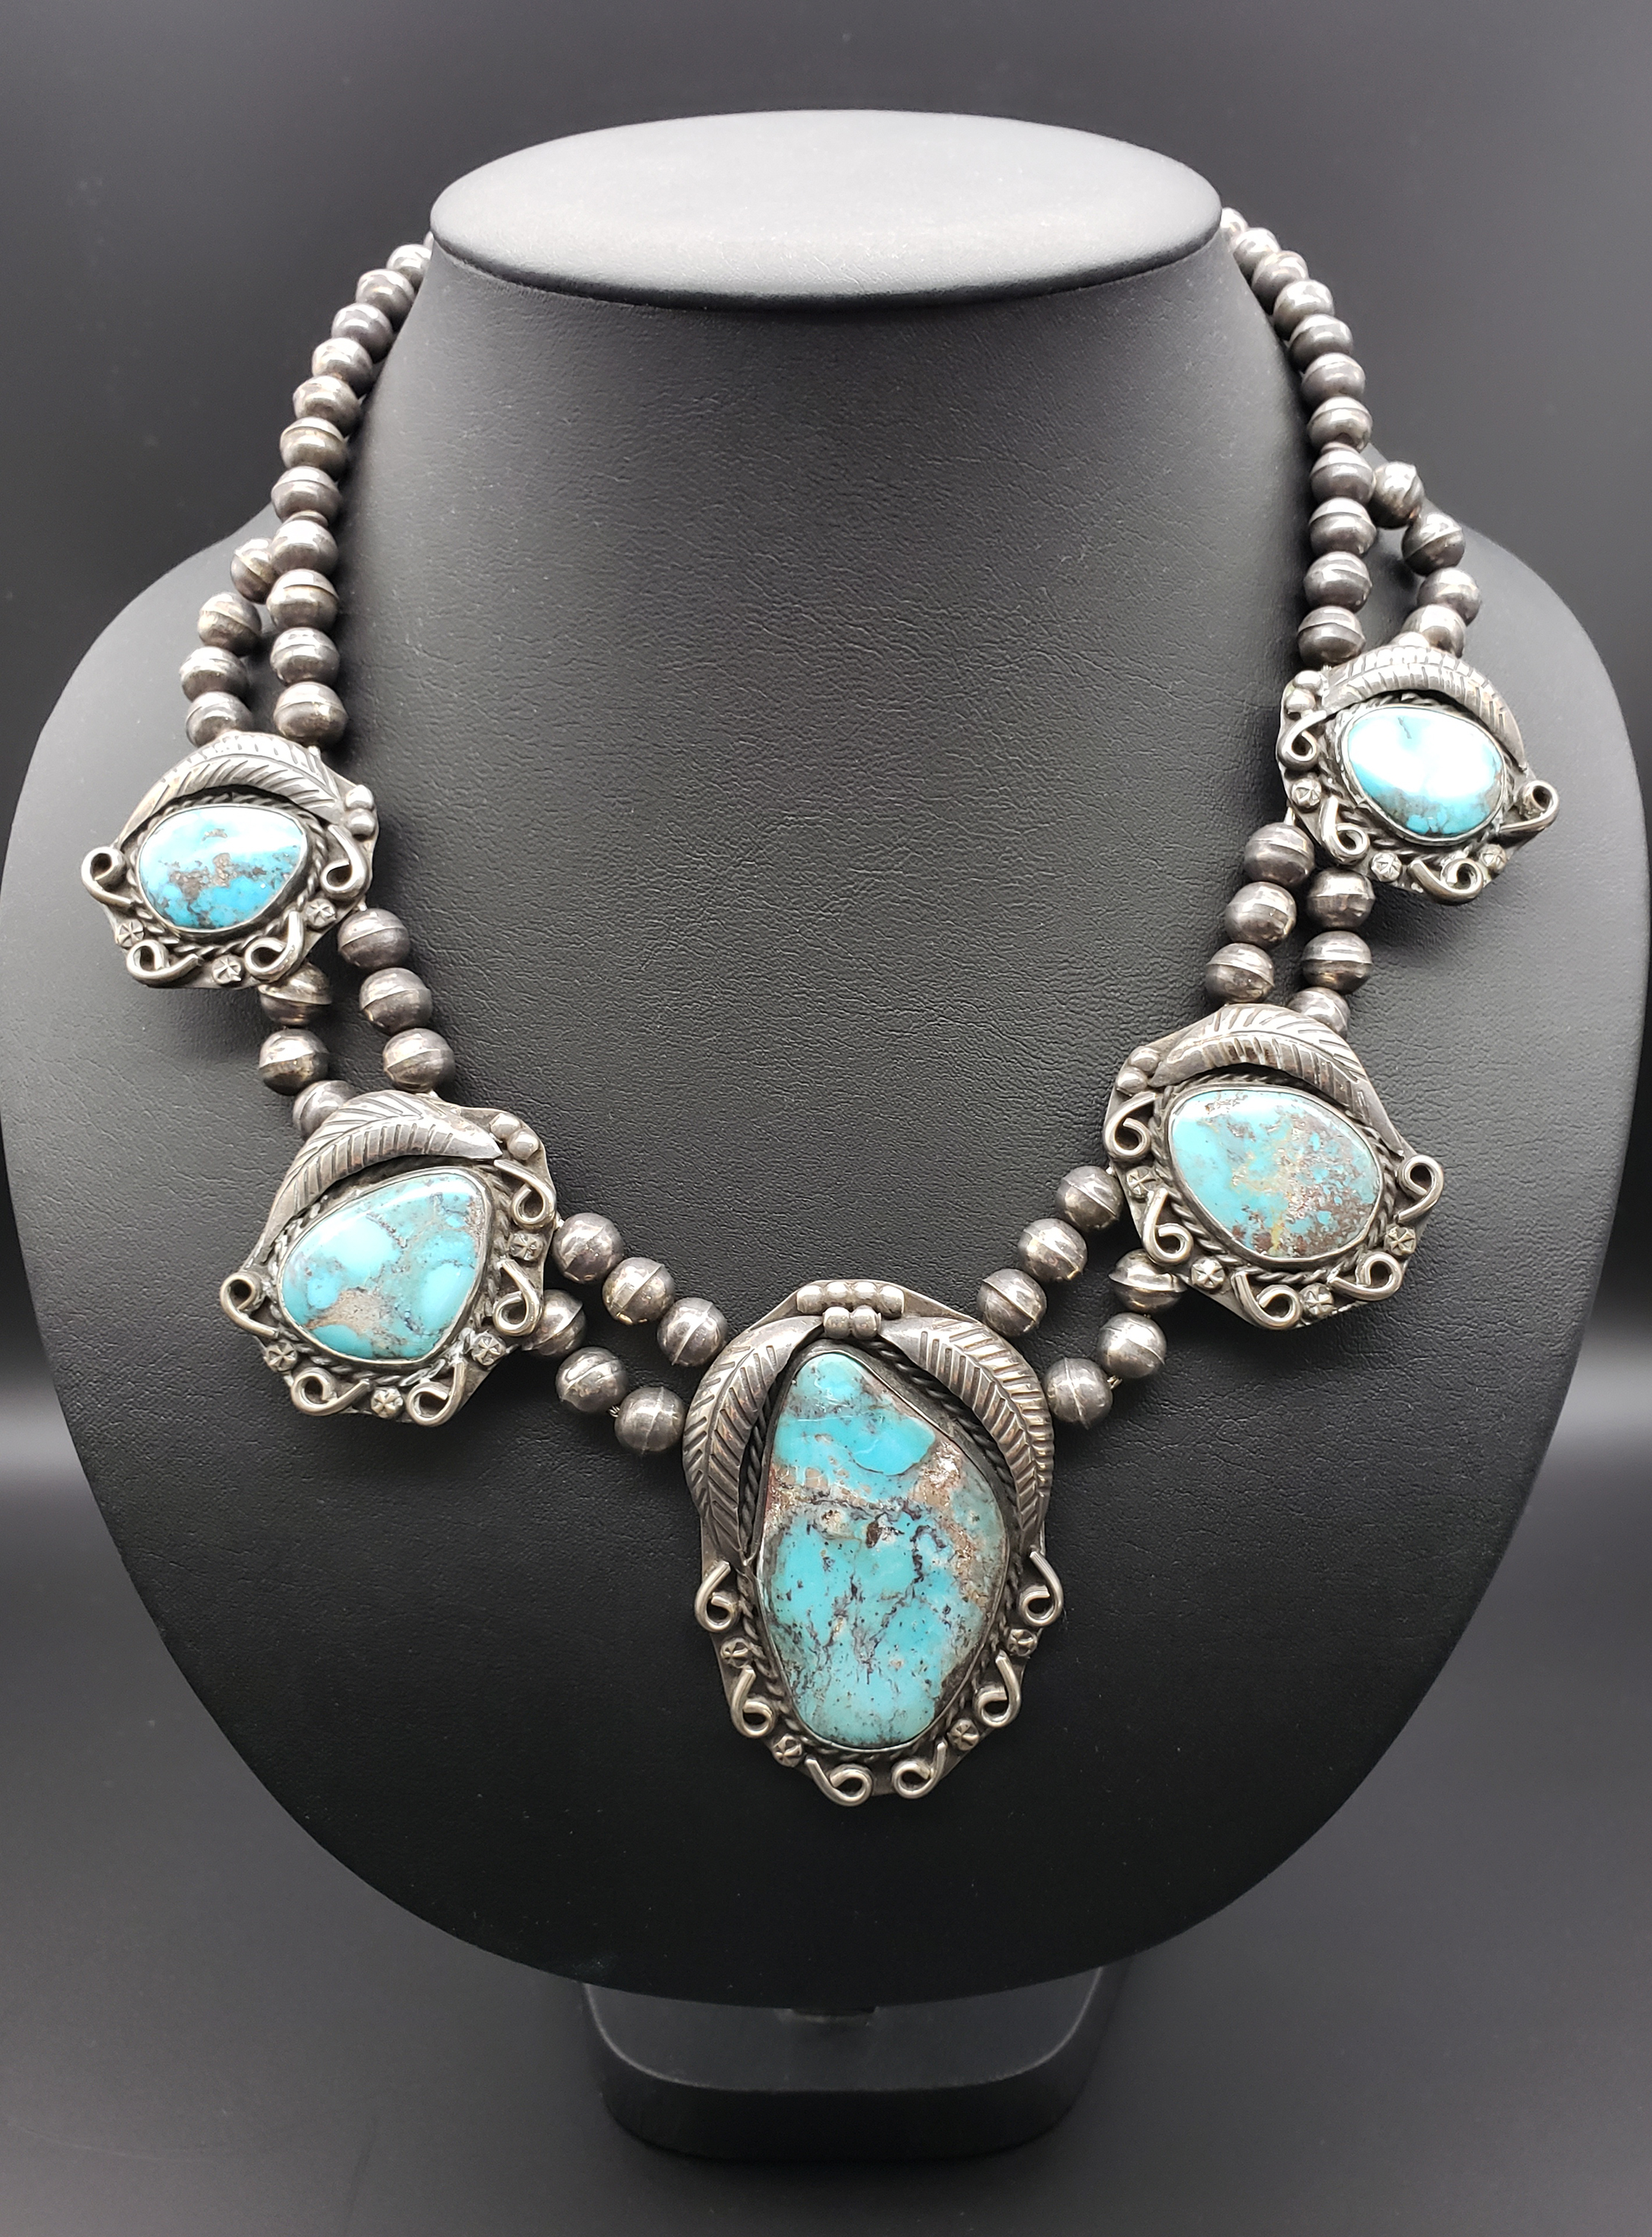 Navajo made necklace from the early 1960's by Esther Keesonnie Brown.